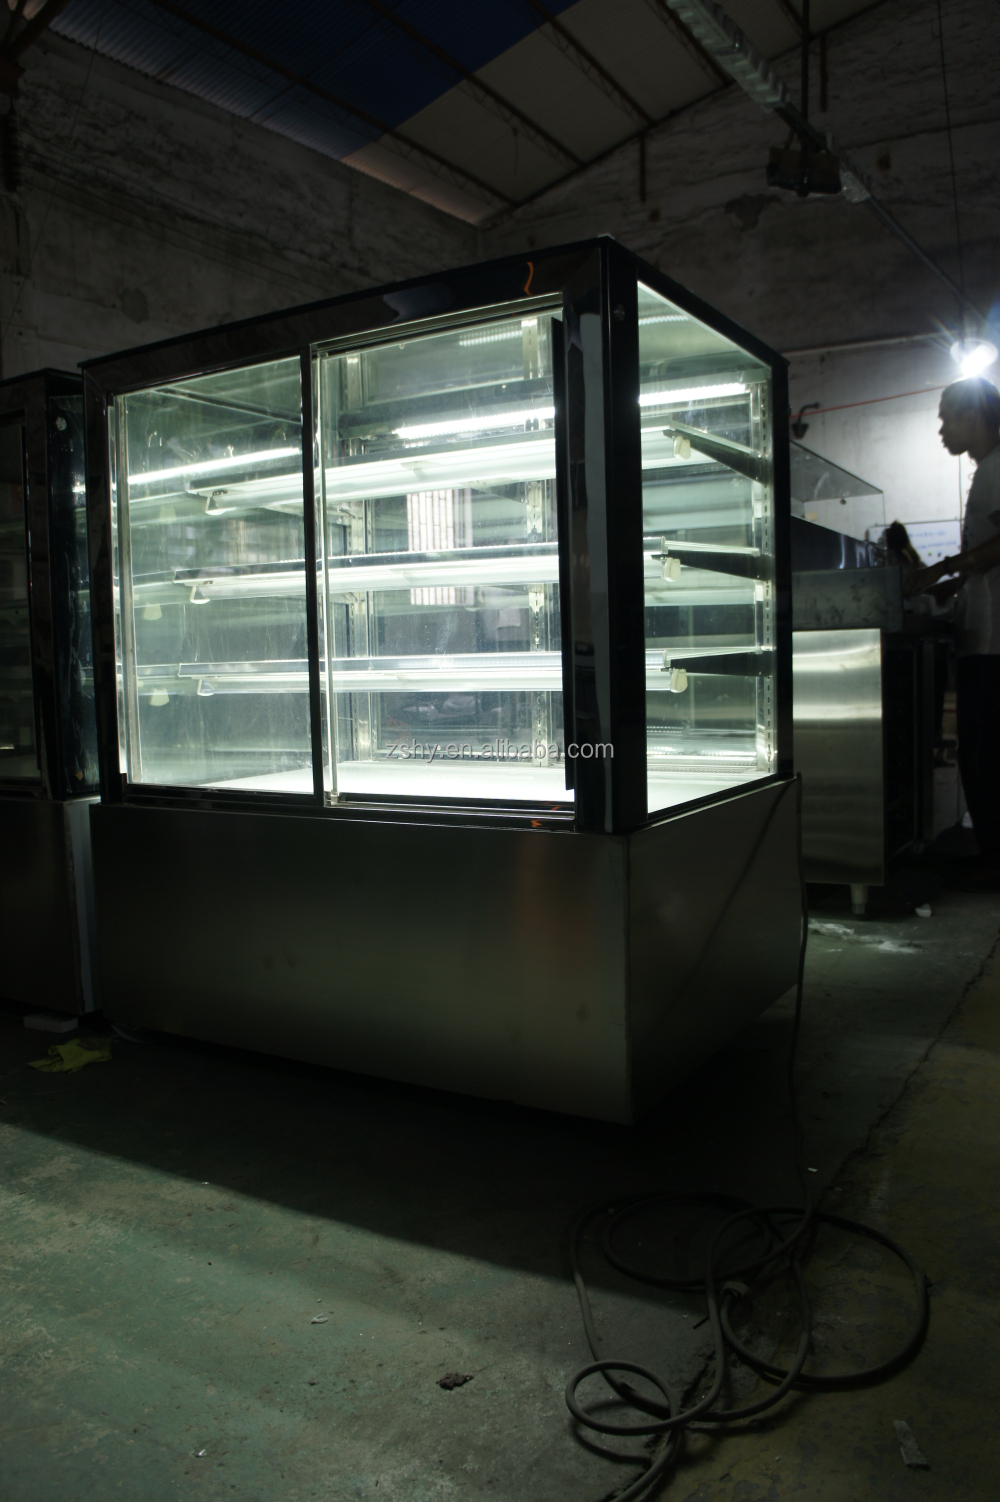 Cake Showcase Refrigerator with CE certification